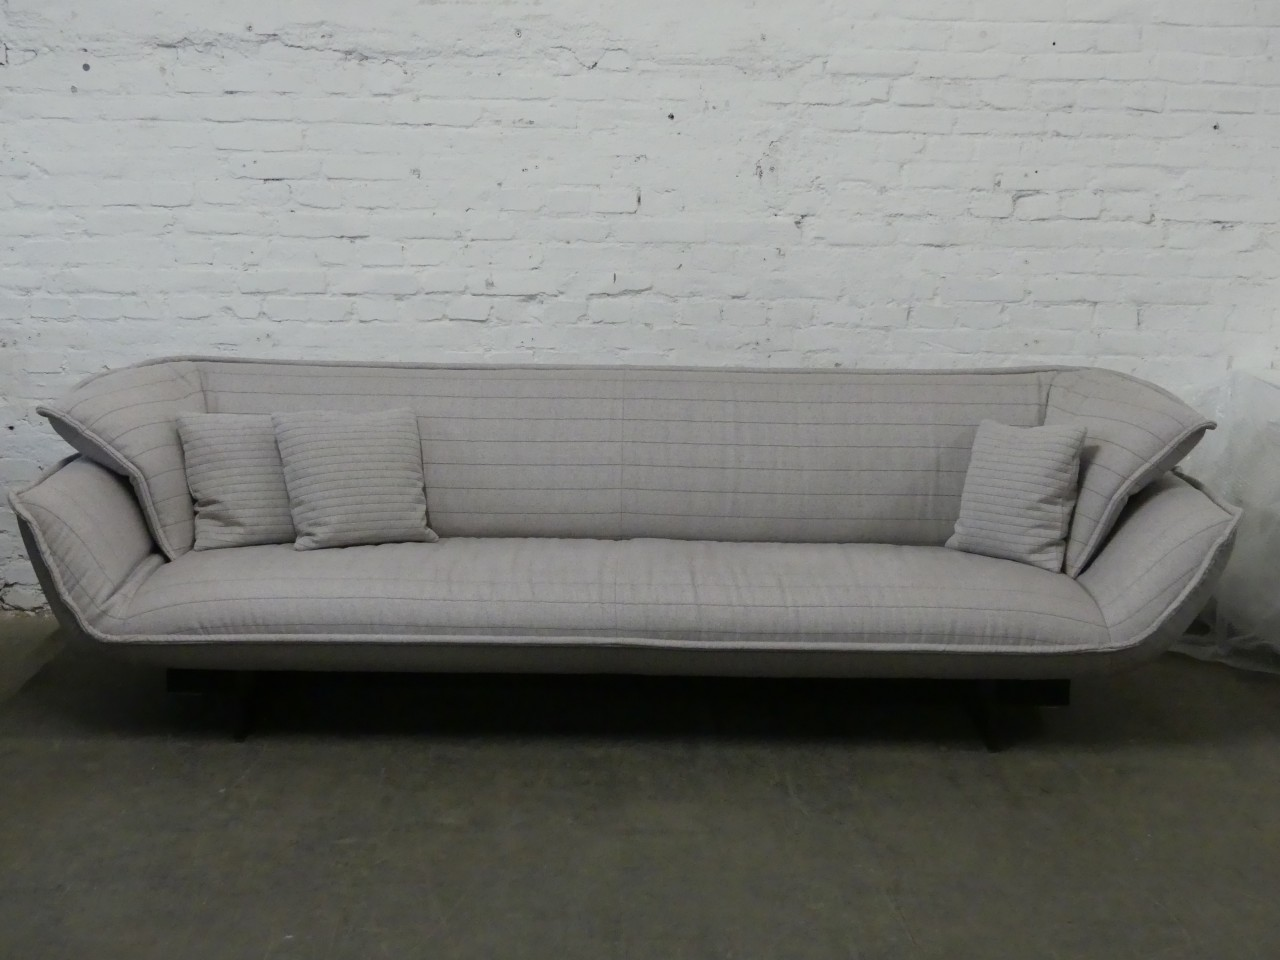 Outlet Cassina Sofa Beam Stoff hellgrau